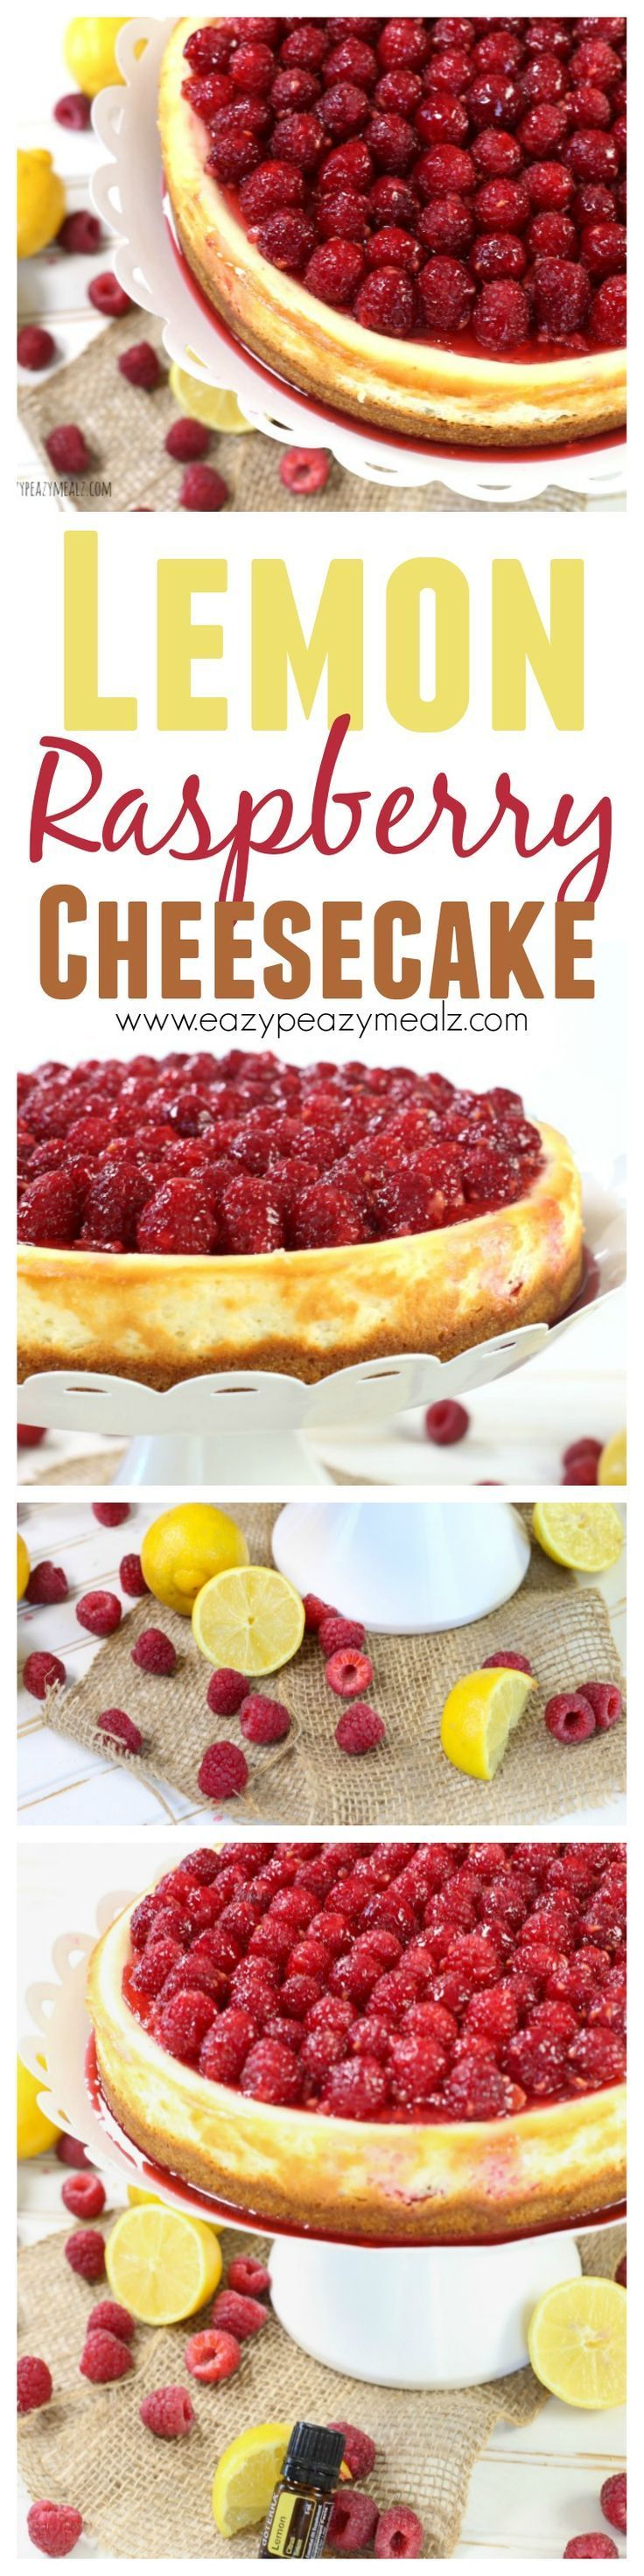 An easy to make lemon raspberry cheesecake. This beautiful dessert is perfect for Spring, make it for Mother's Day!